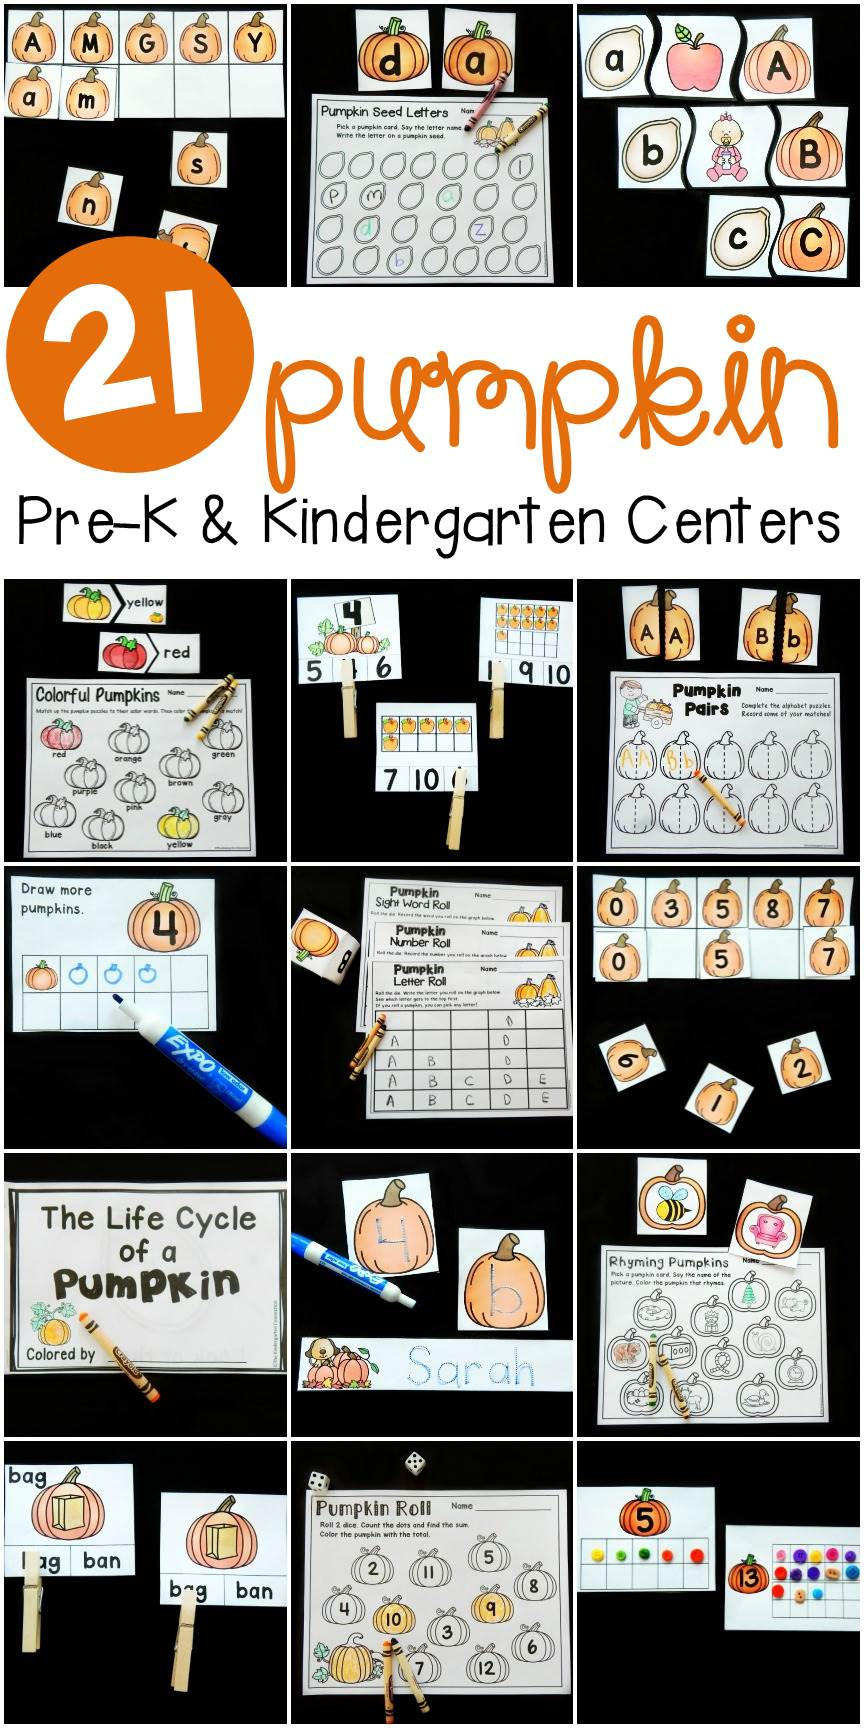 These pumpkin centers and activities for fall are perfect for Pre-K and Kindergarten students working on letters, cvc words, sight words, numbers, and more!